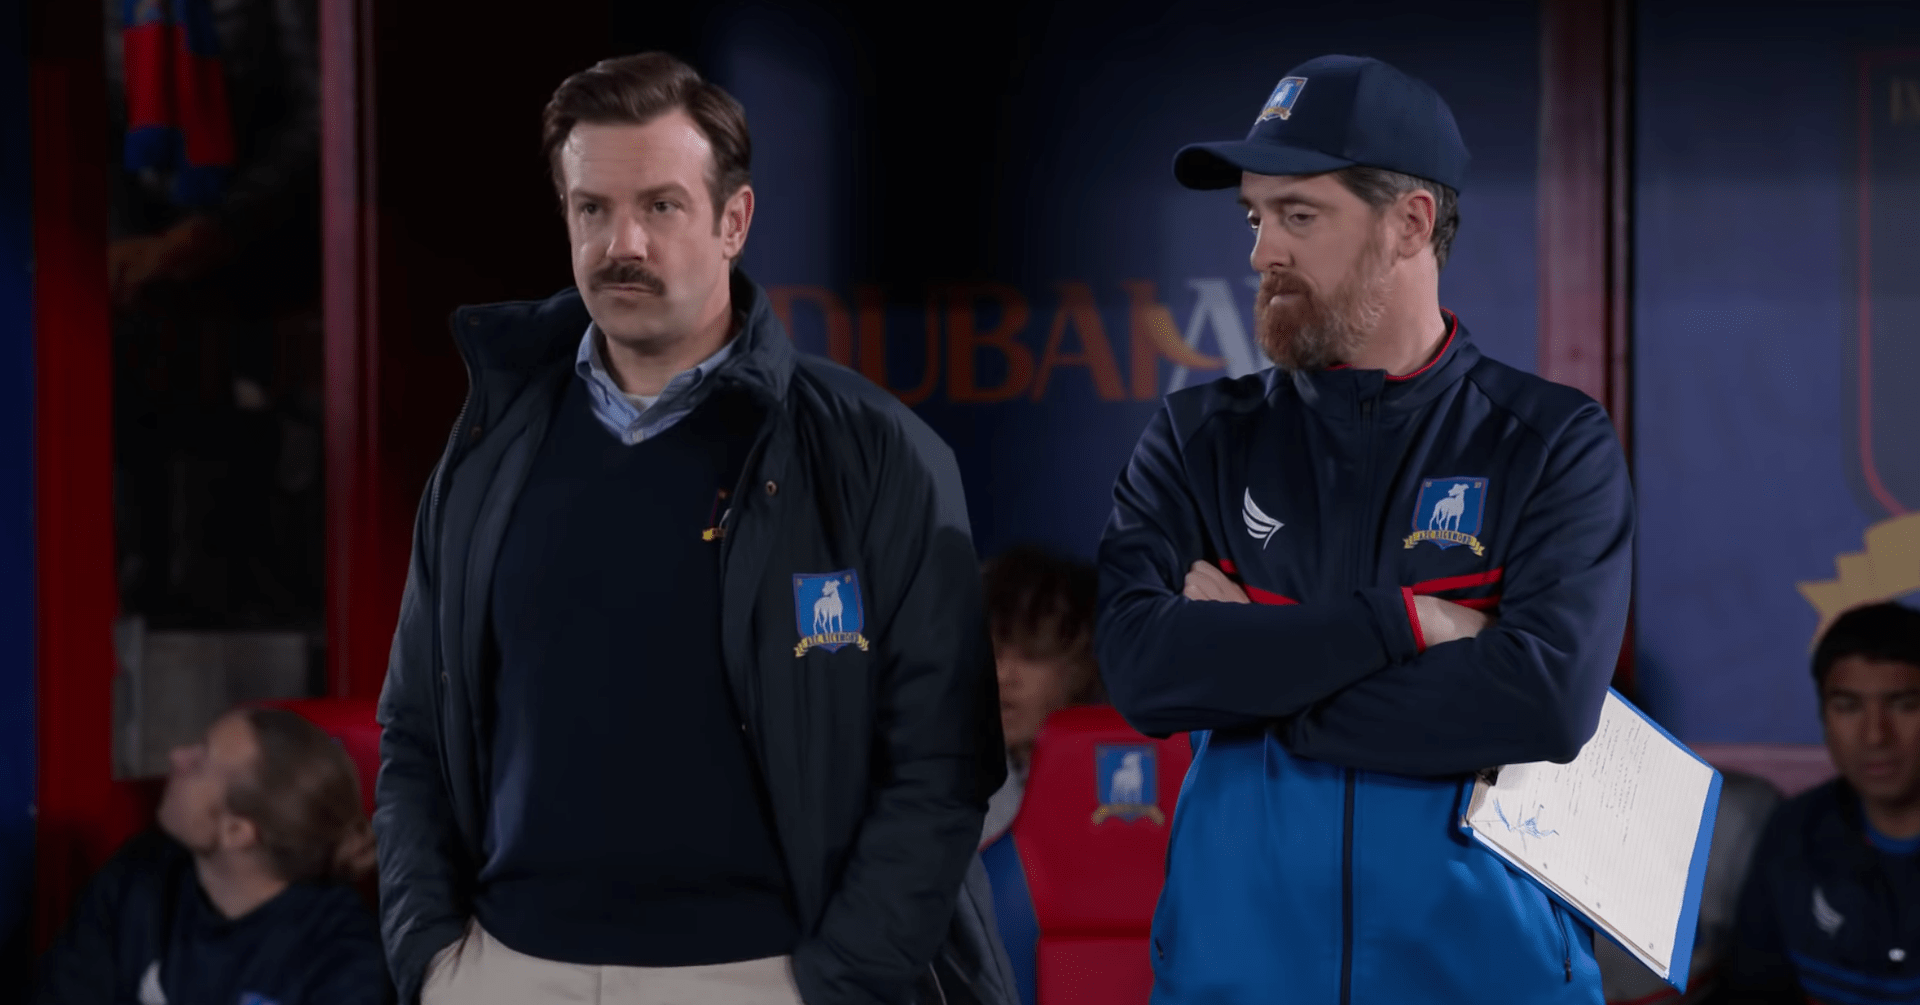 Apple TV+ releases official 'Ted Lasso' season 2 trailer